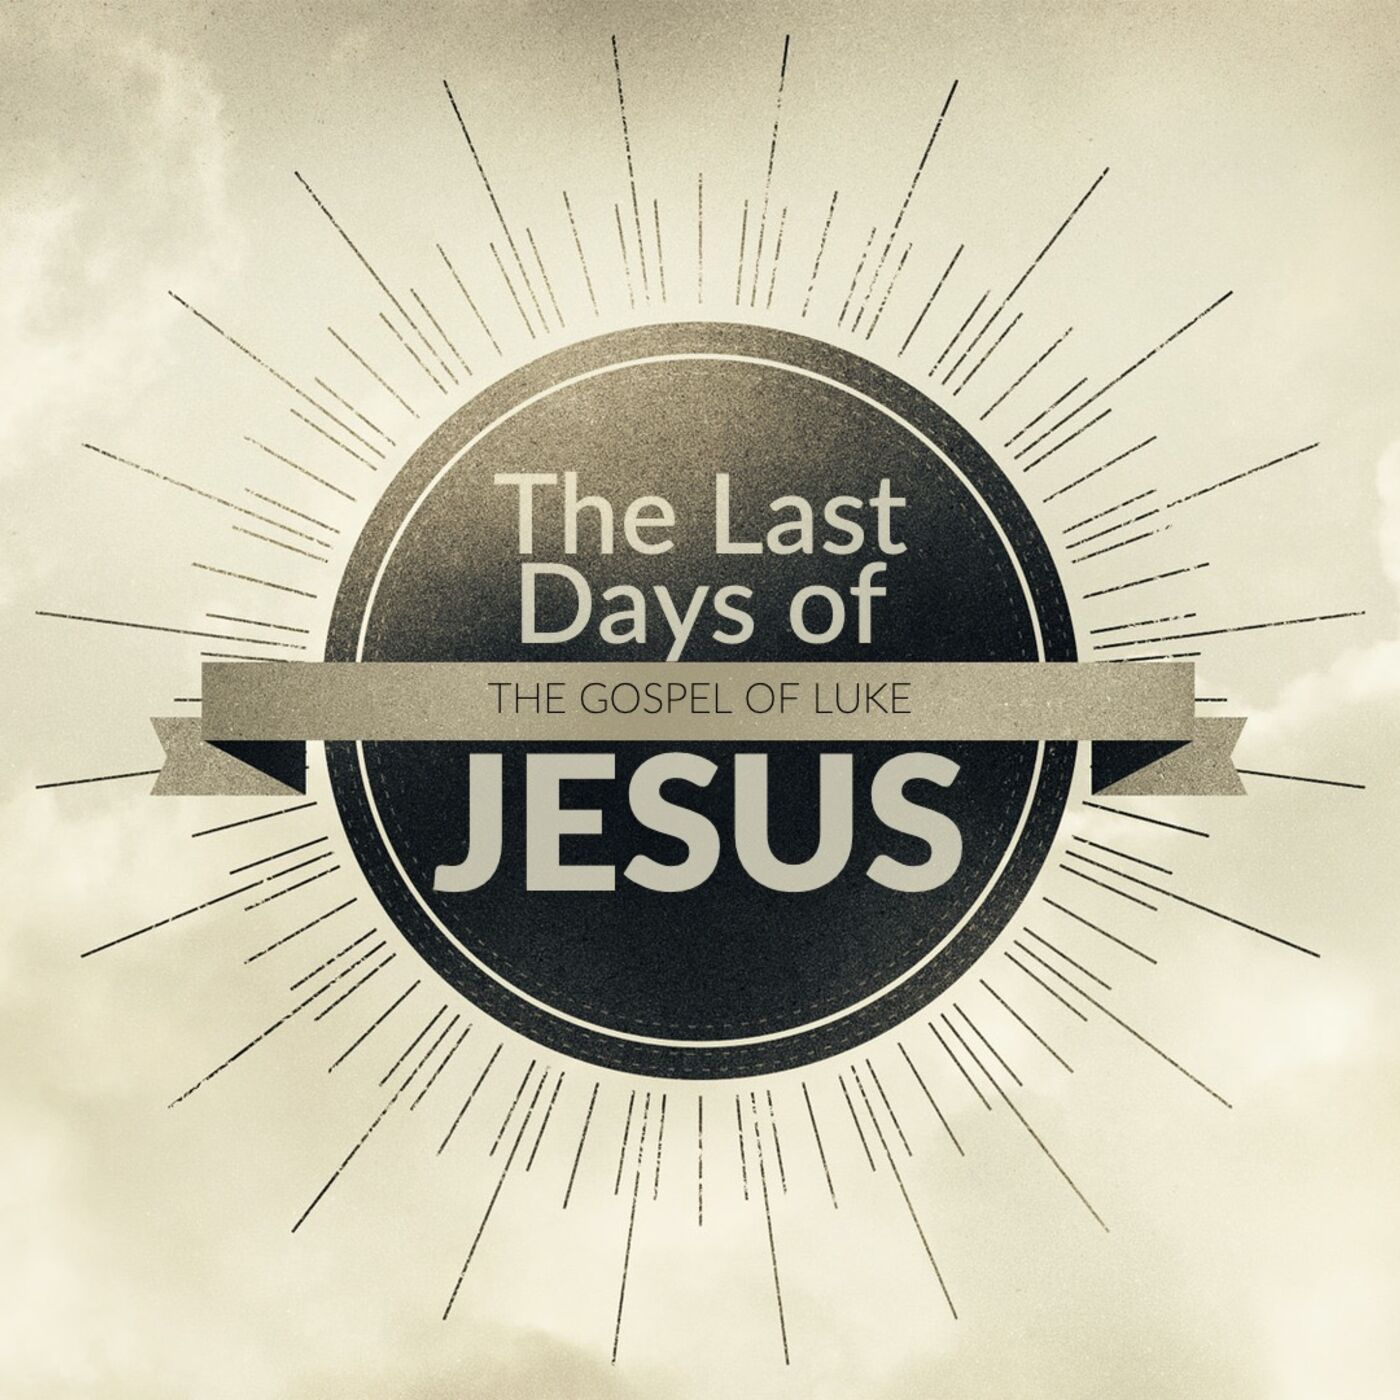 The Last Days of Jesus: Jesus Cleanses the Temple (Luke 19:45-48)